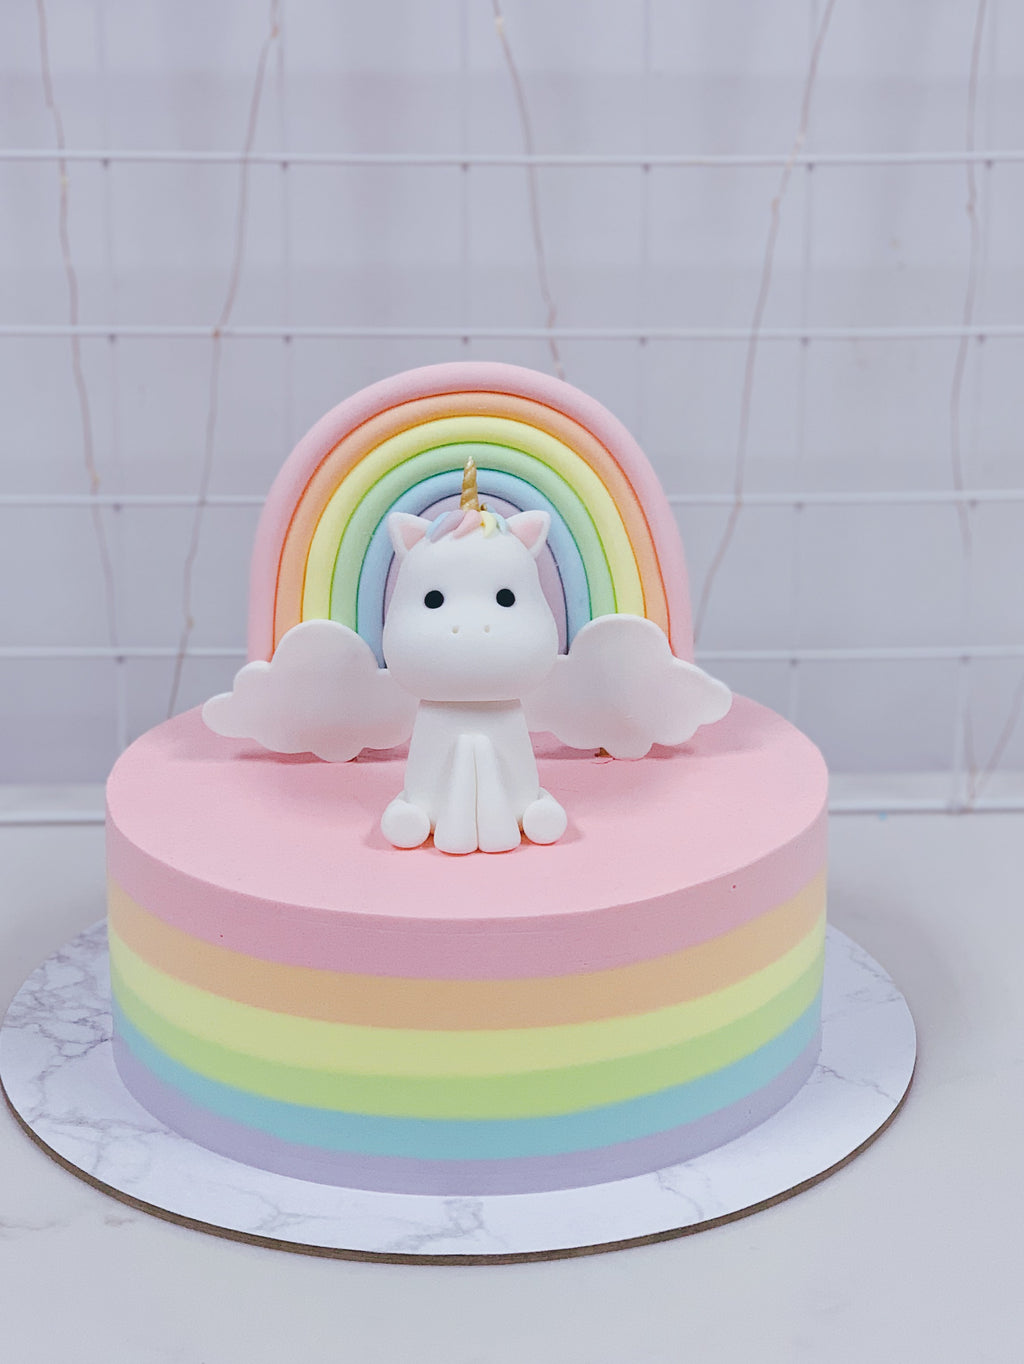 Pastel Rainbow Cake with Unicorn and Rainbow Topper